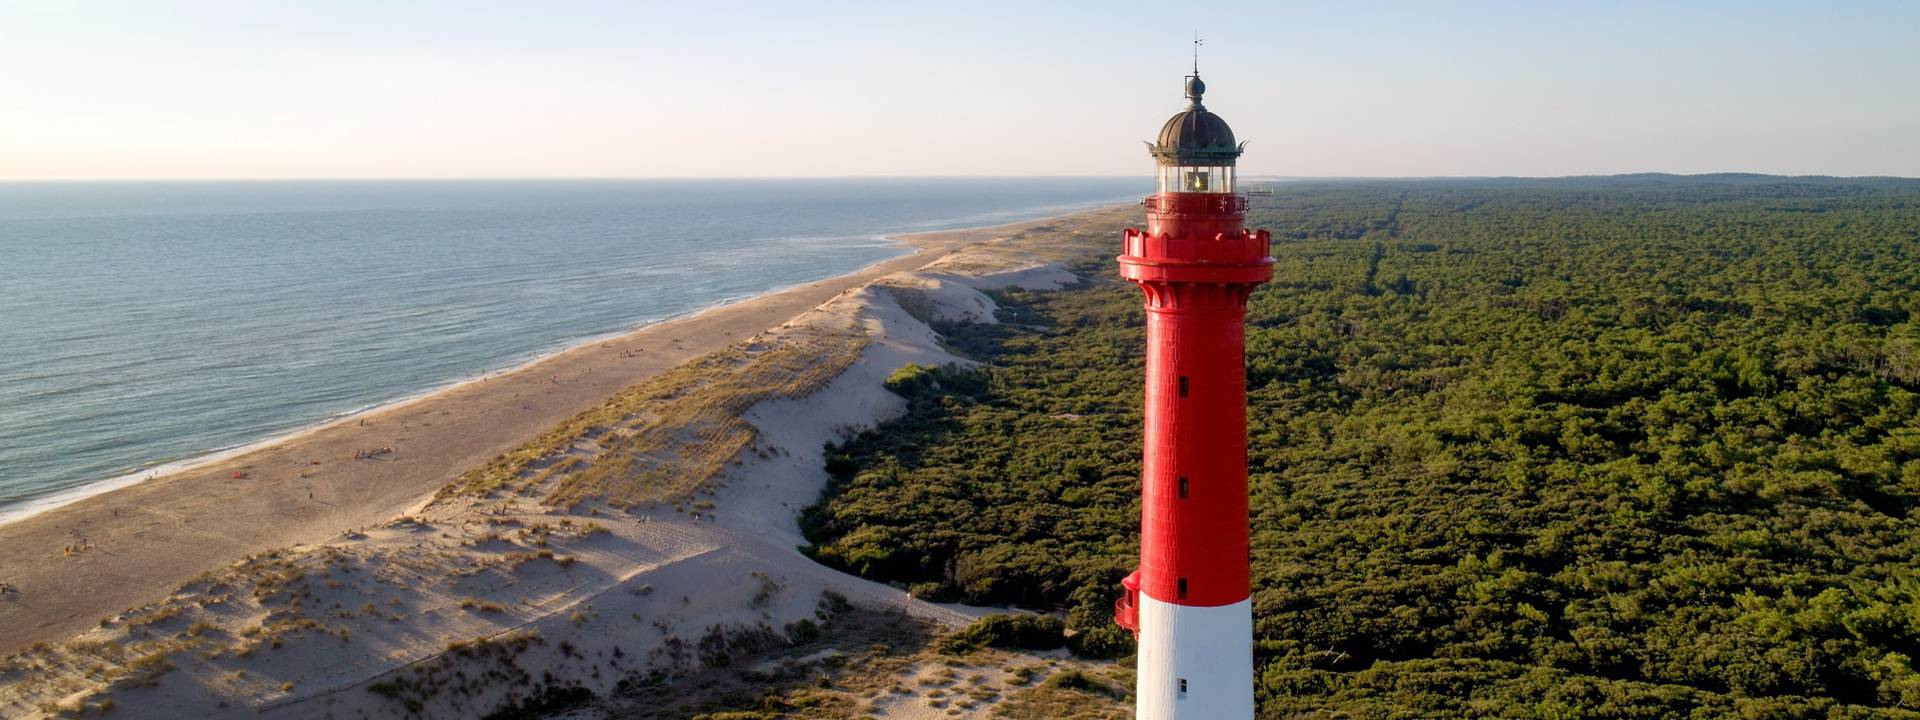 Phare Coubre Charente